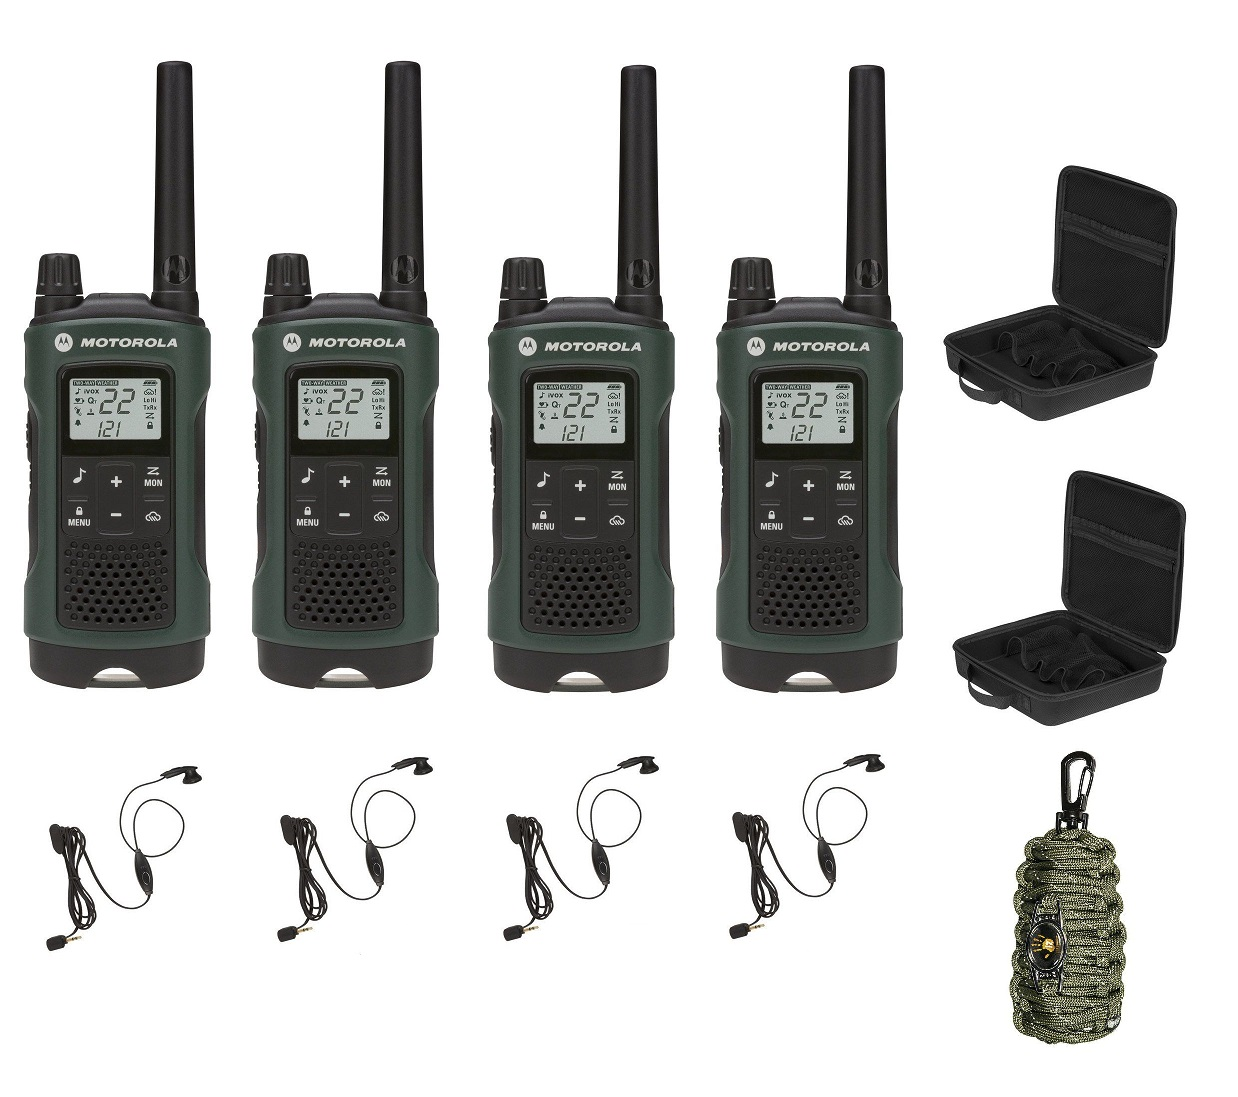 354 likewise Traditional Media Vs Social Media Advertising Cpm likewise Tyt Th 8600 Dual Band Mobile Radio besides Cxt 545 together with Kenwood  7302 8302. on two way radio channels